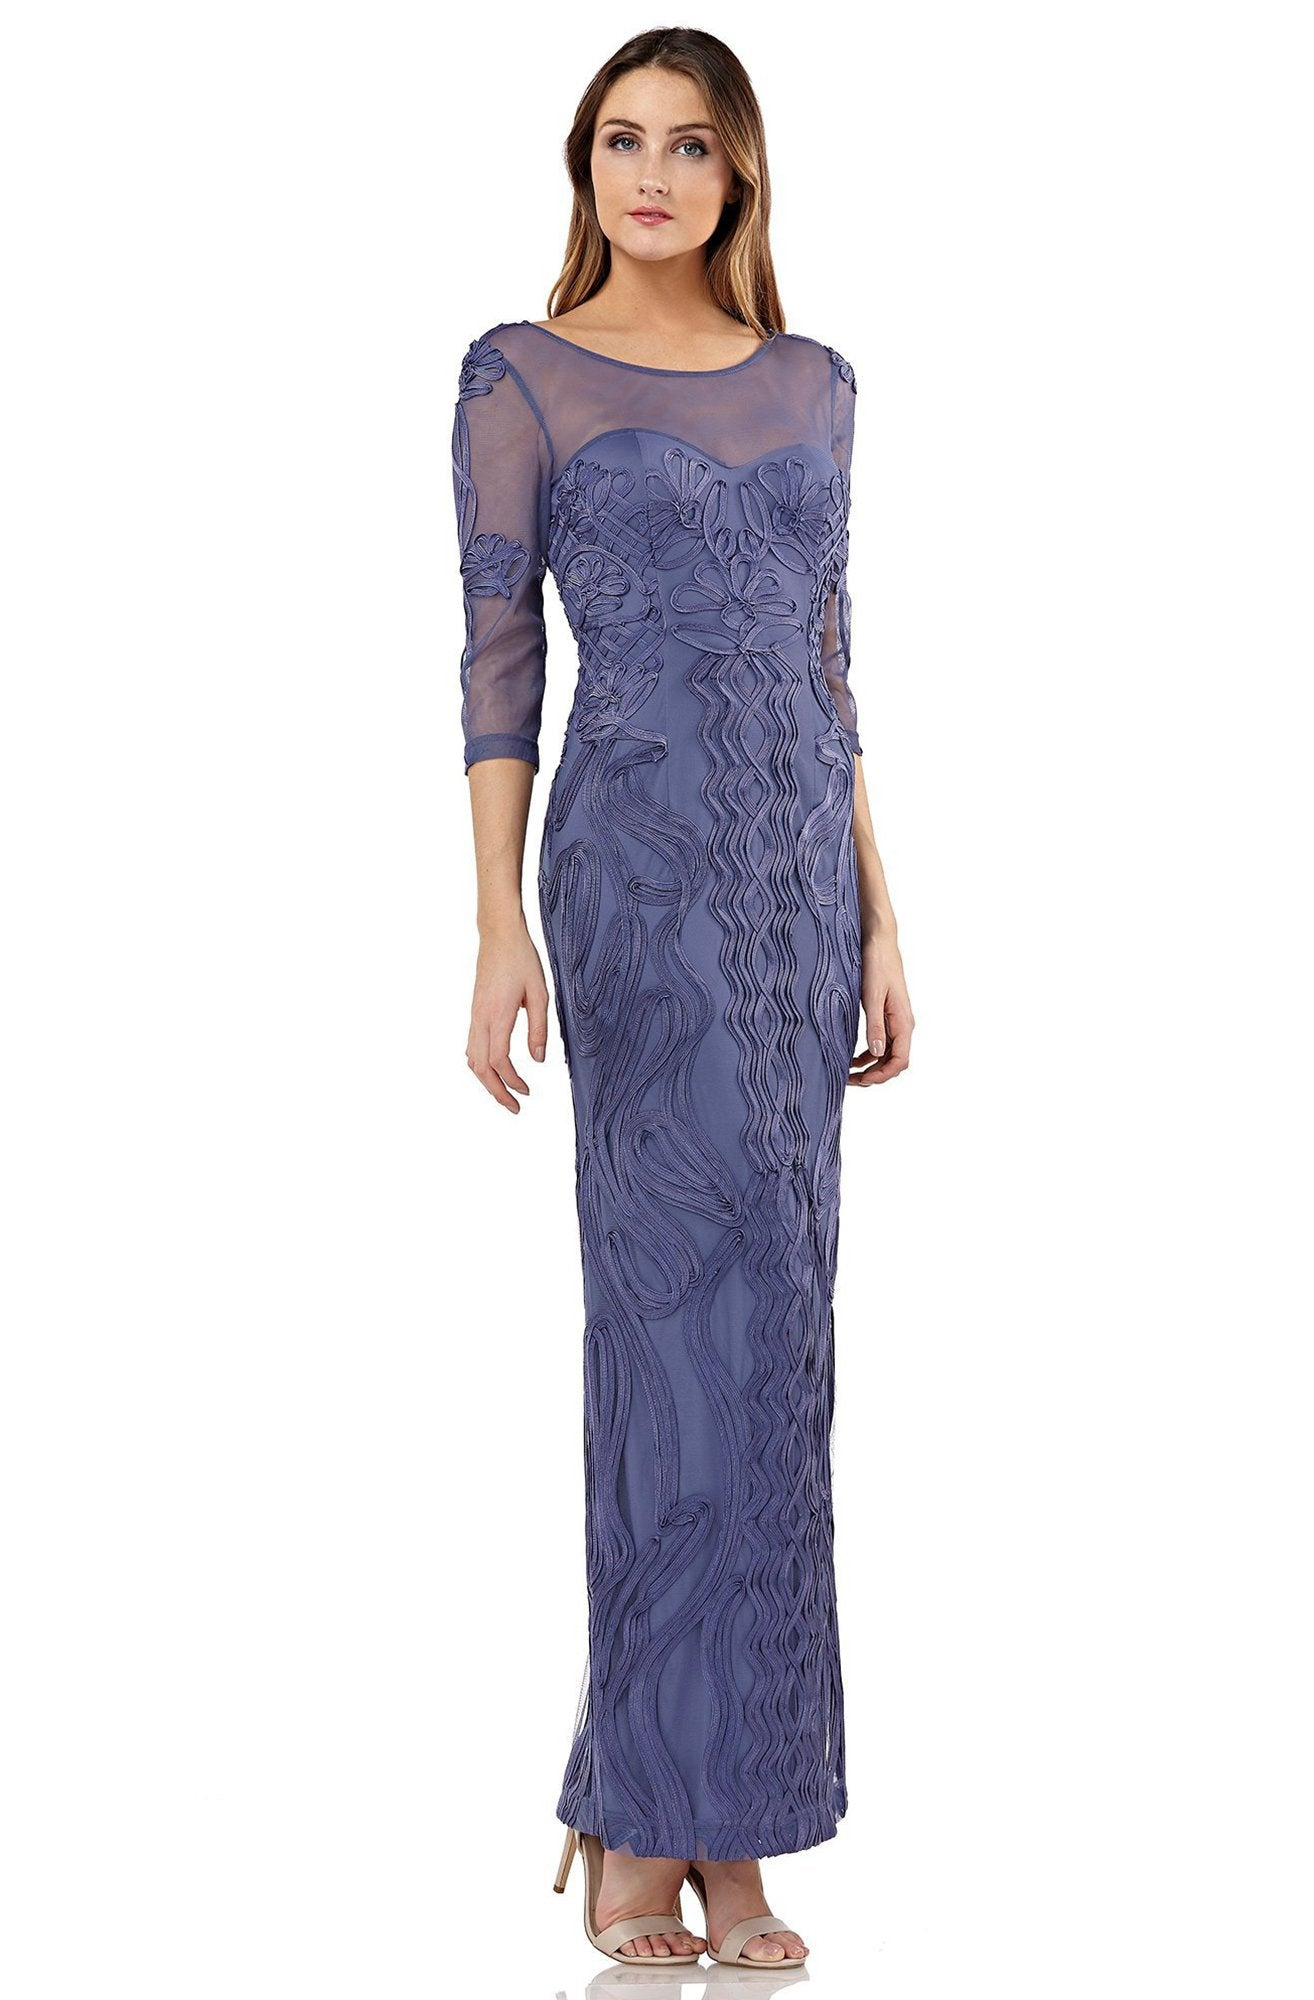 JS Collections - 866071 Embroidered Soutache Long Column Dress In Purple